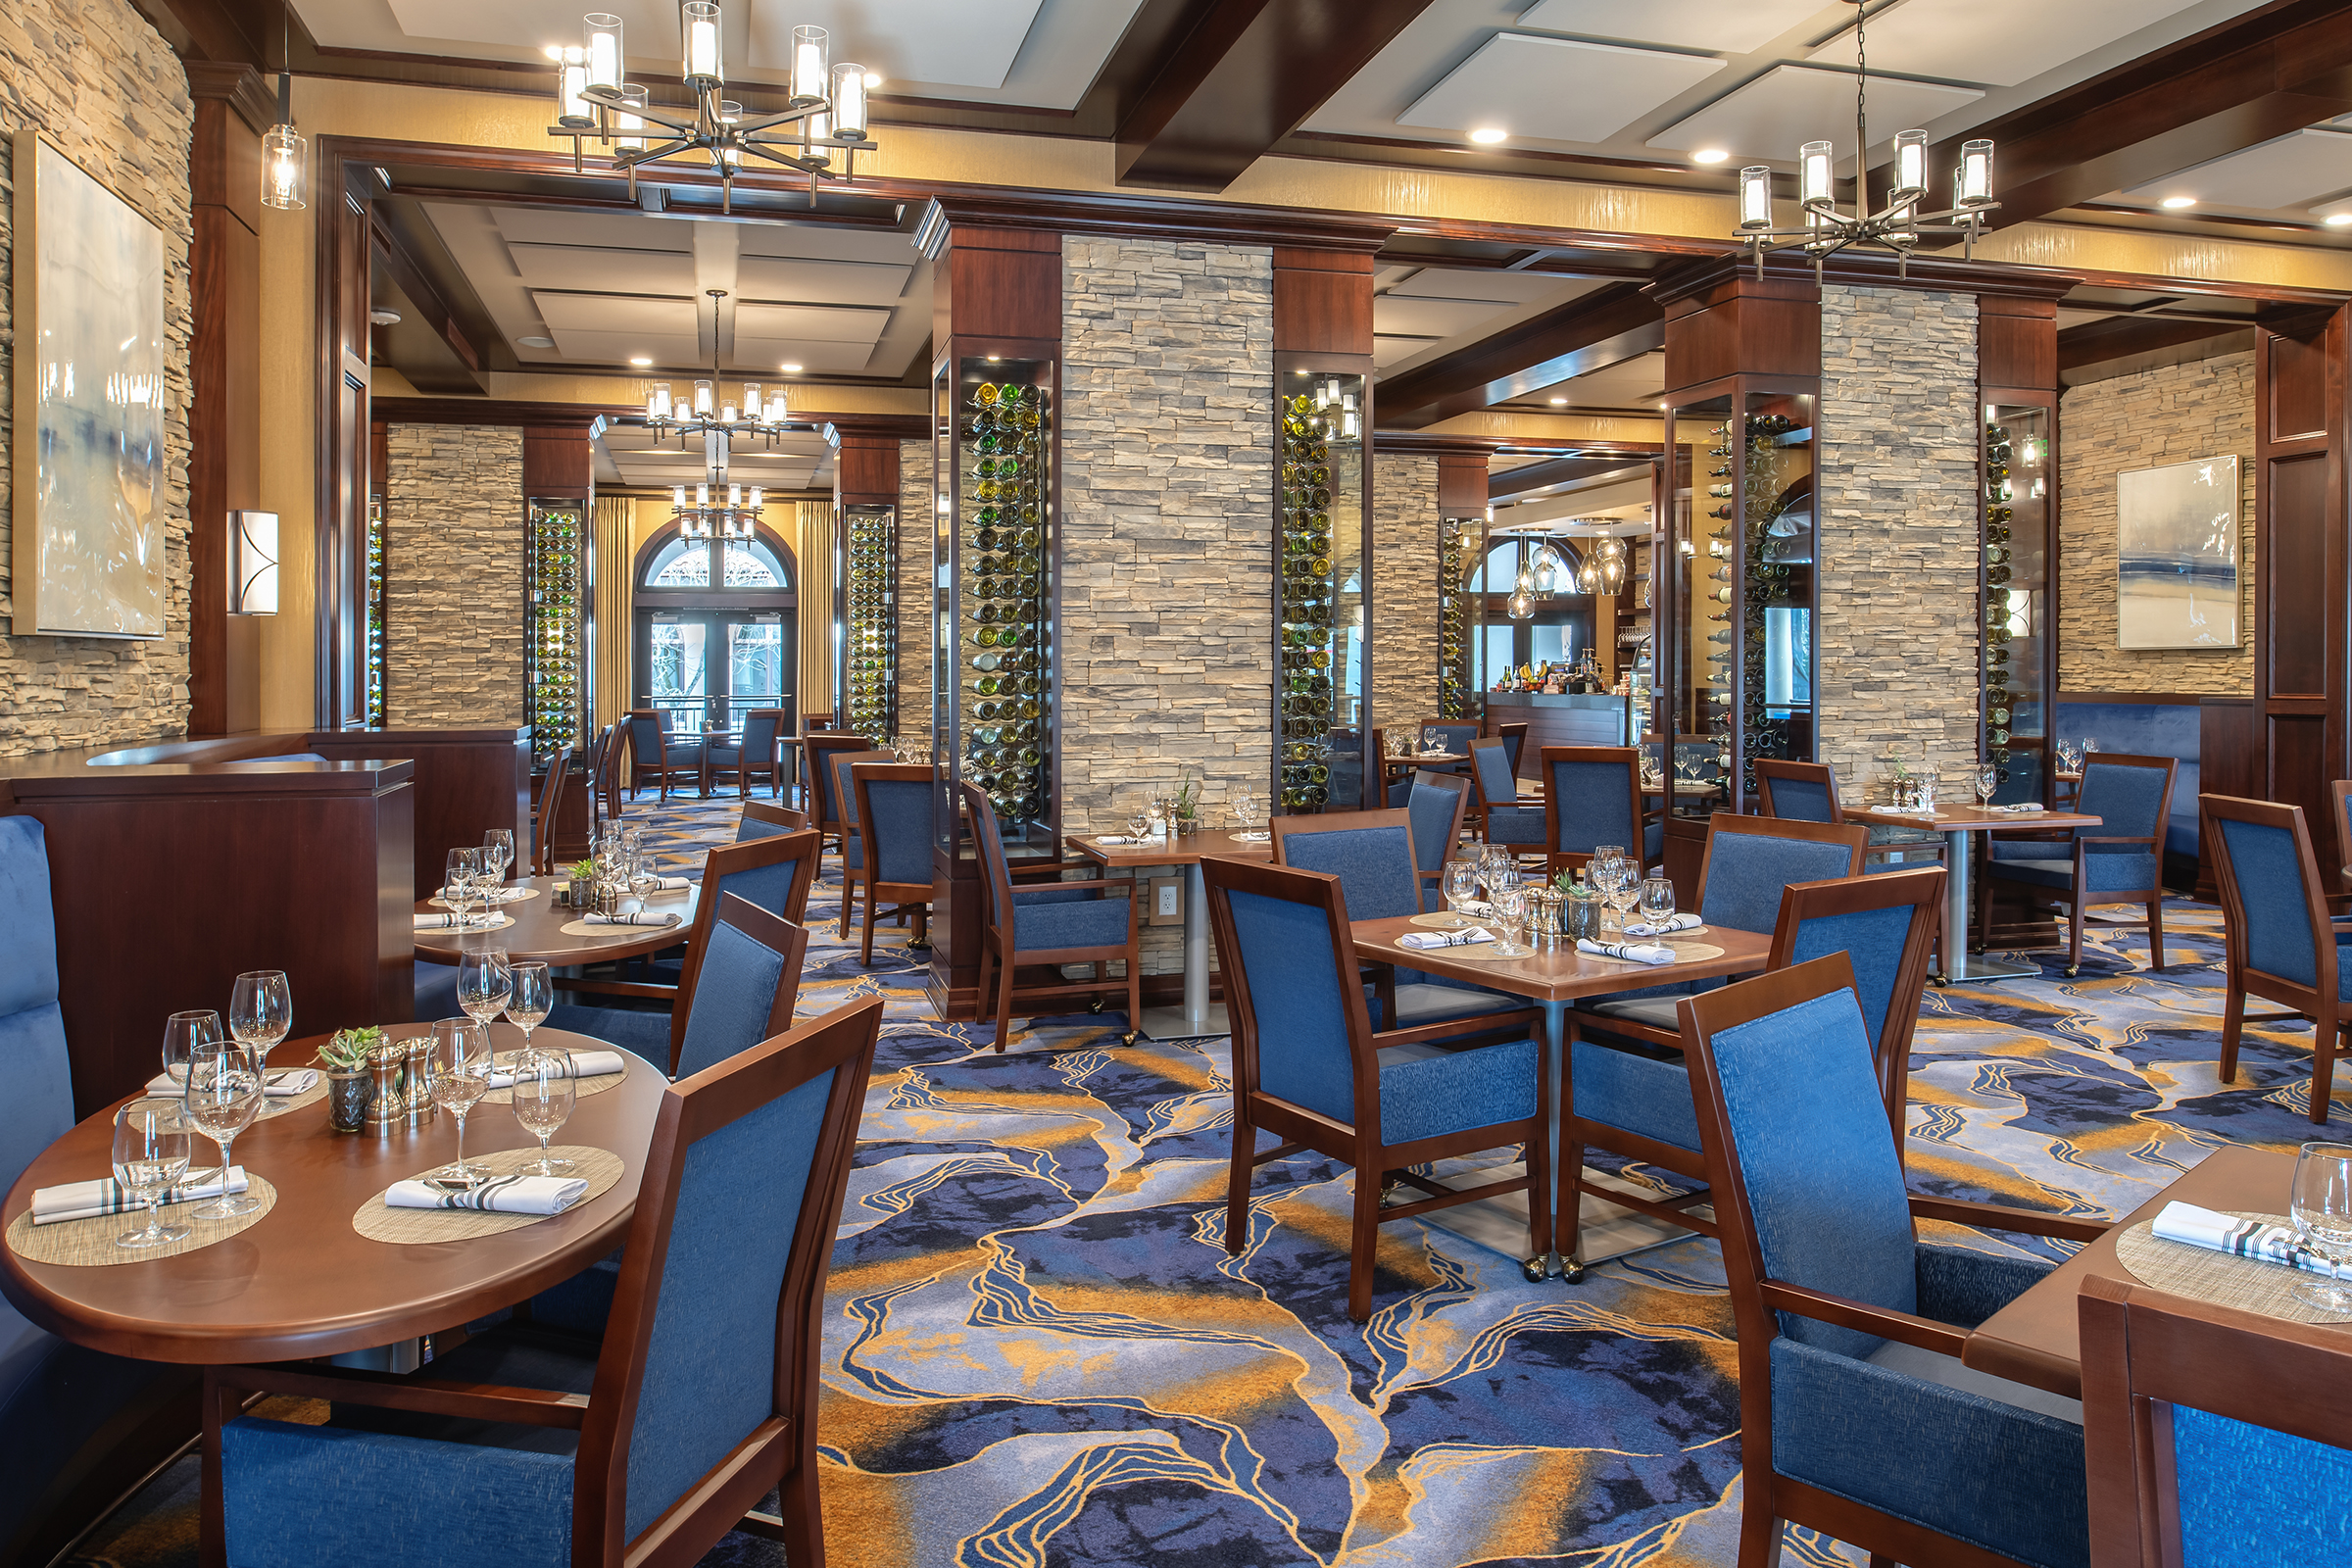 seating area of restaurant with colorful accents on chairs, stone, carpeting and wine bottle art decorations